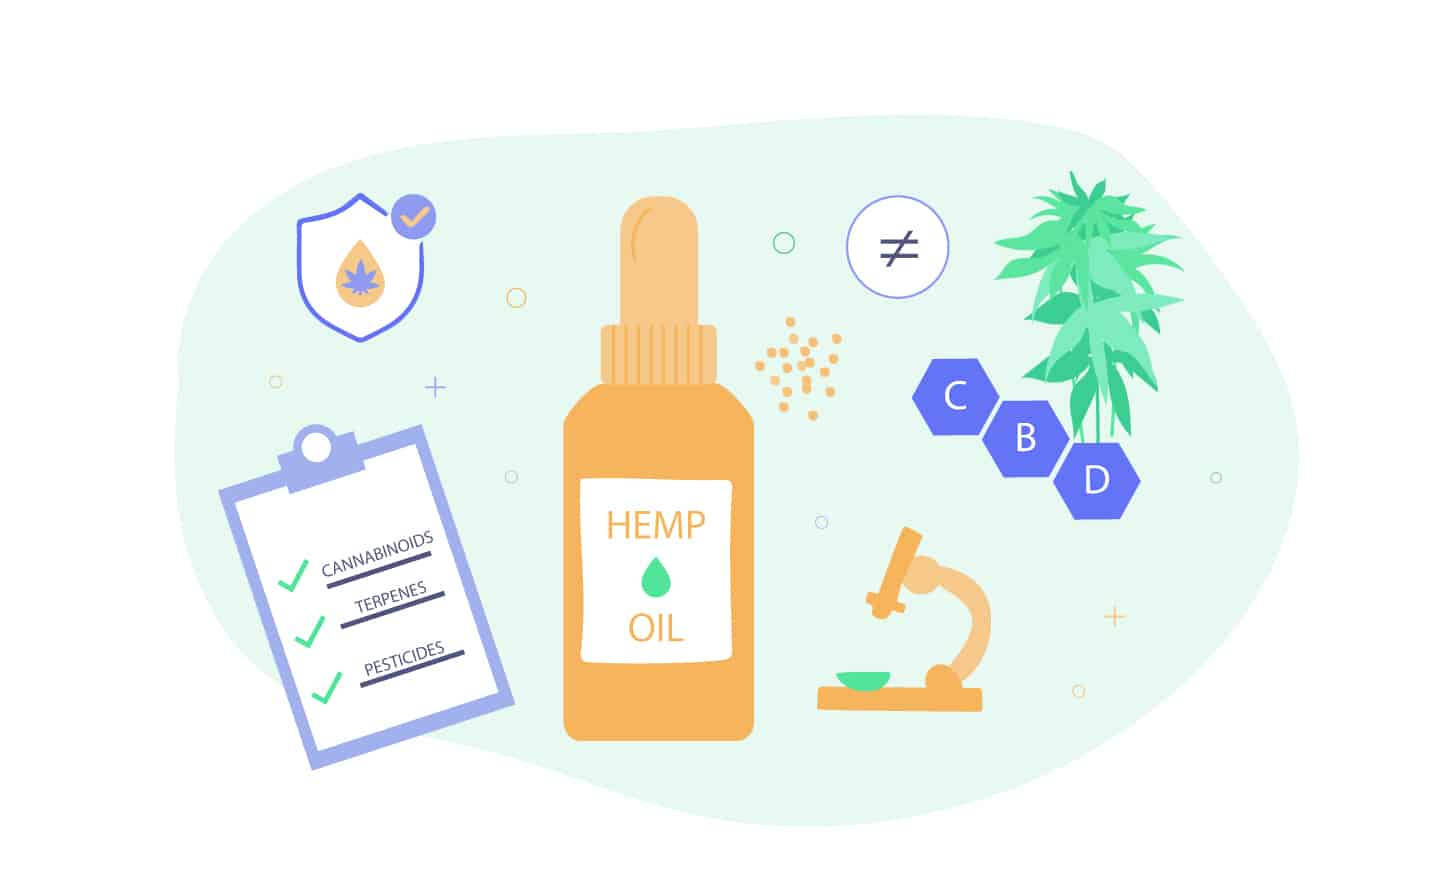 Why your hemp oil may not have CBD